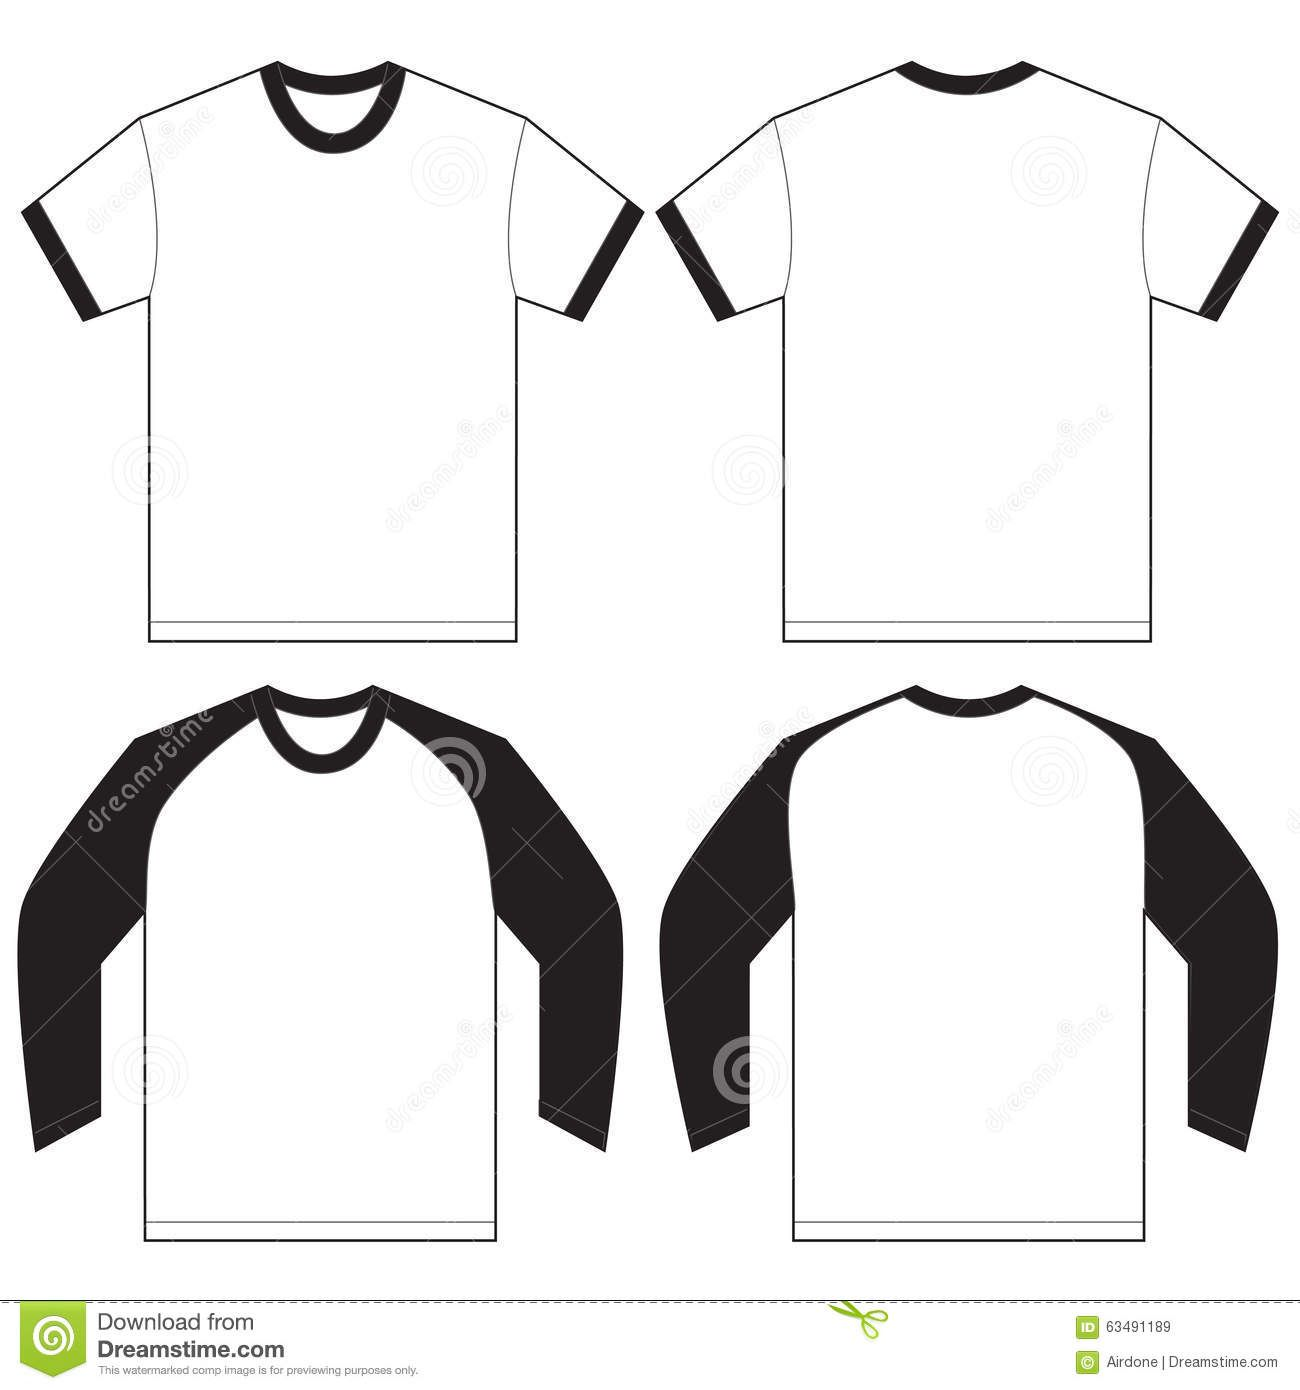 008 Stupendou T Shirt Template Design Picture  Psd Free Download EditableFull